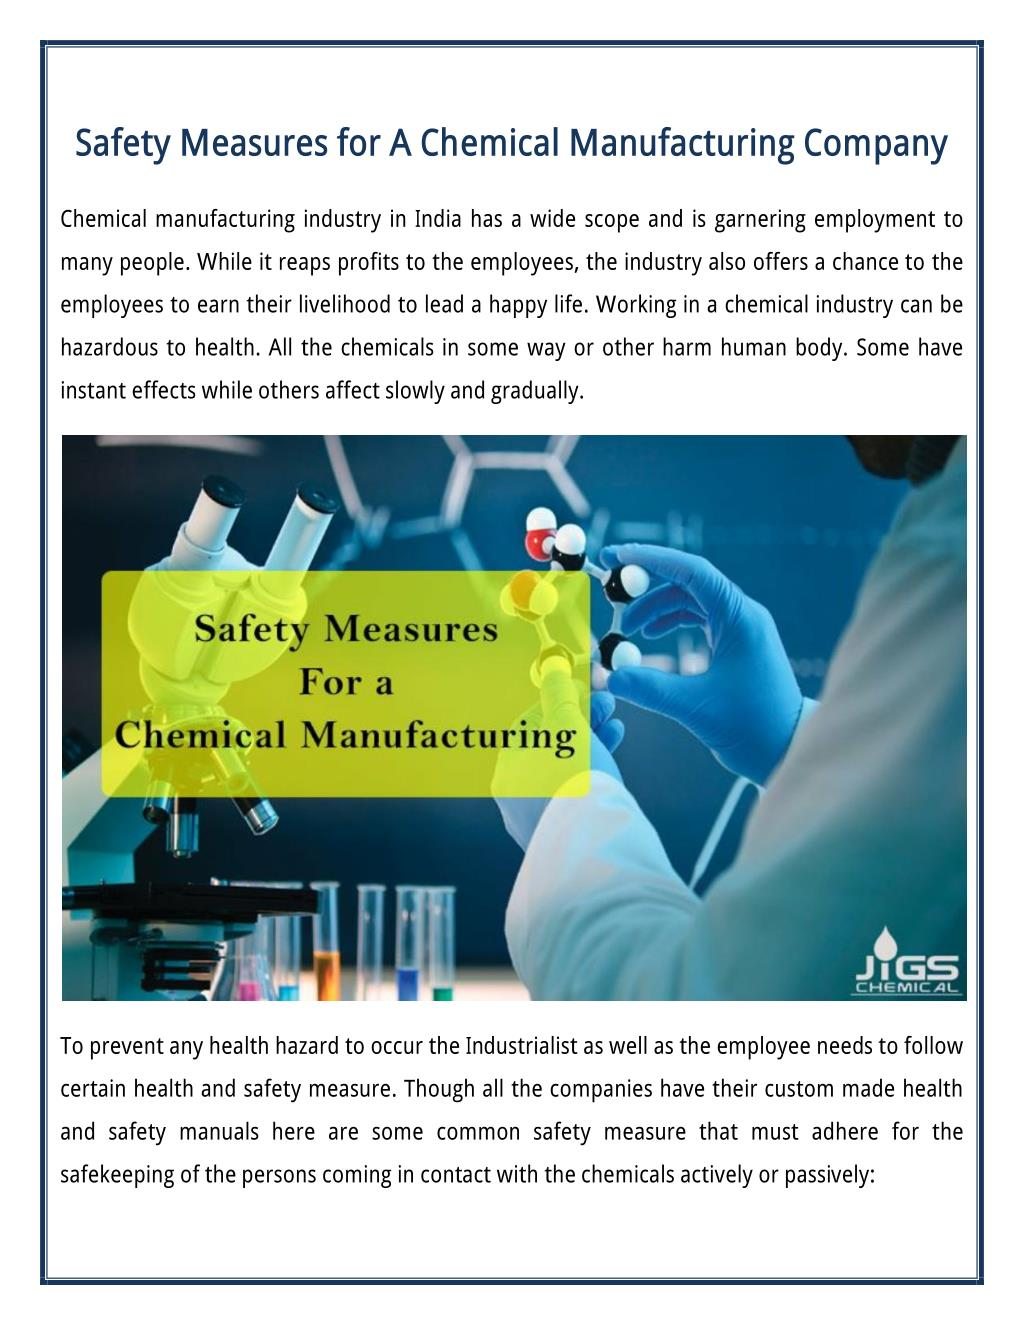 PPT - Some Common Safety Measures for A Chemical Manufacturing